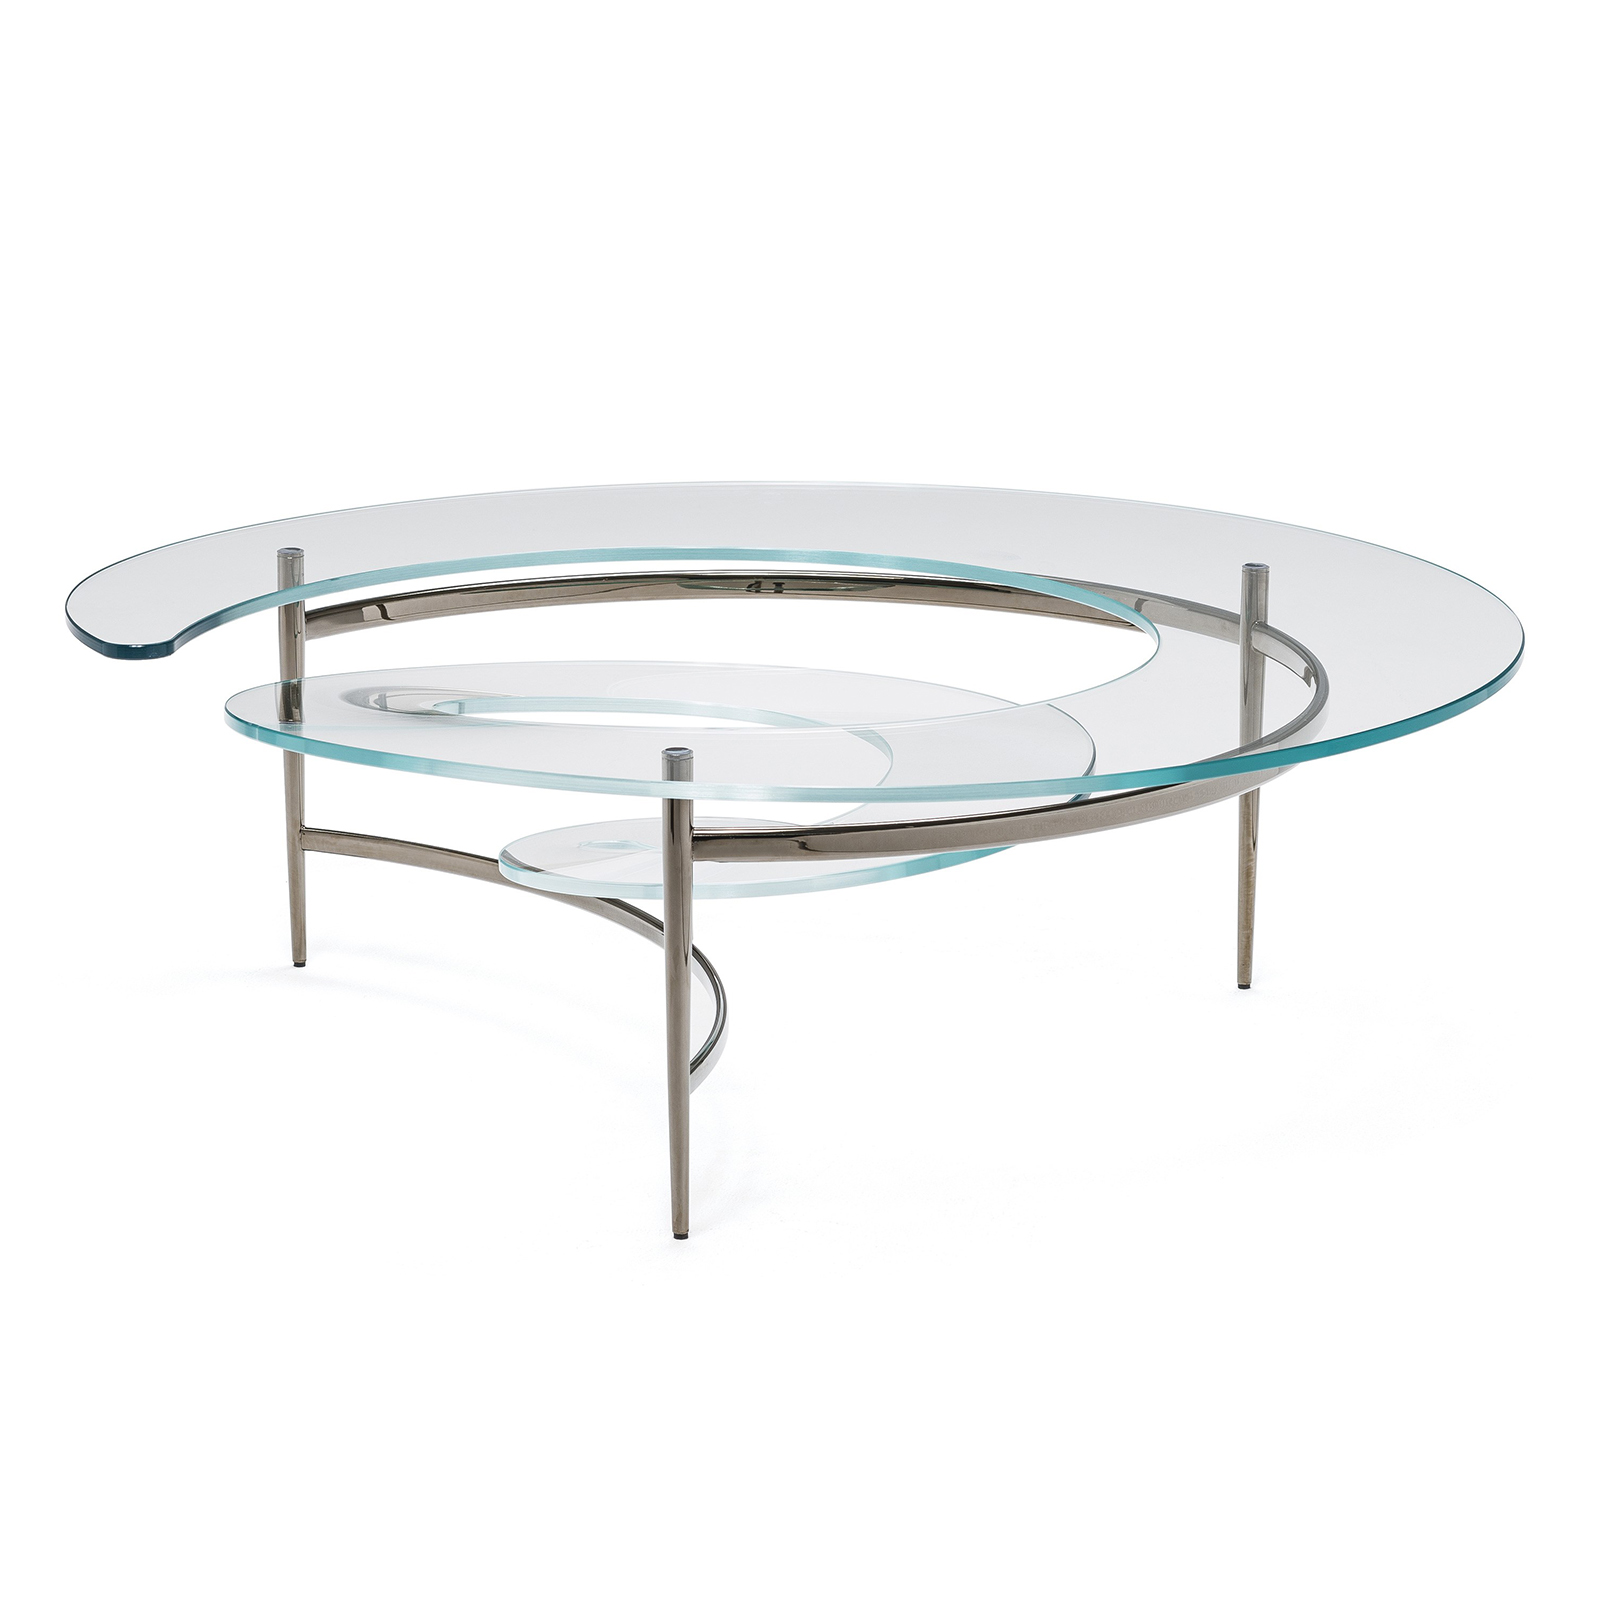 Table basse design en verre spirale mobilier de luxe - Table basse verre design ...